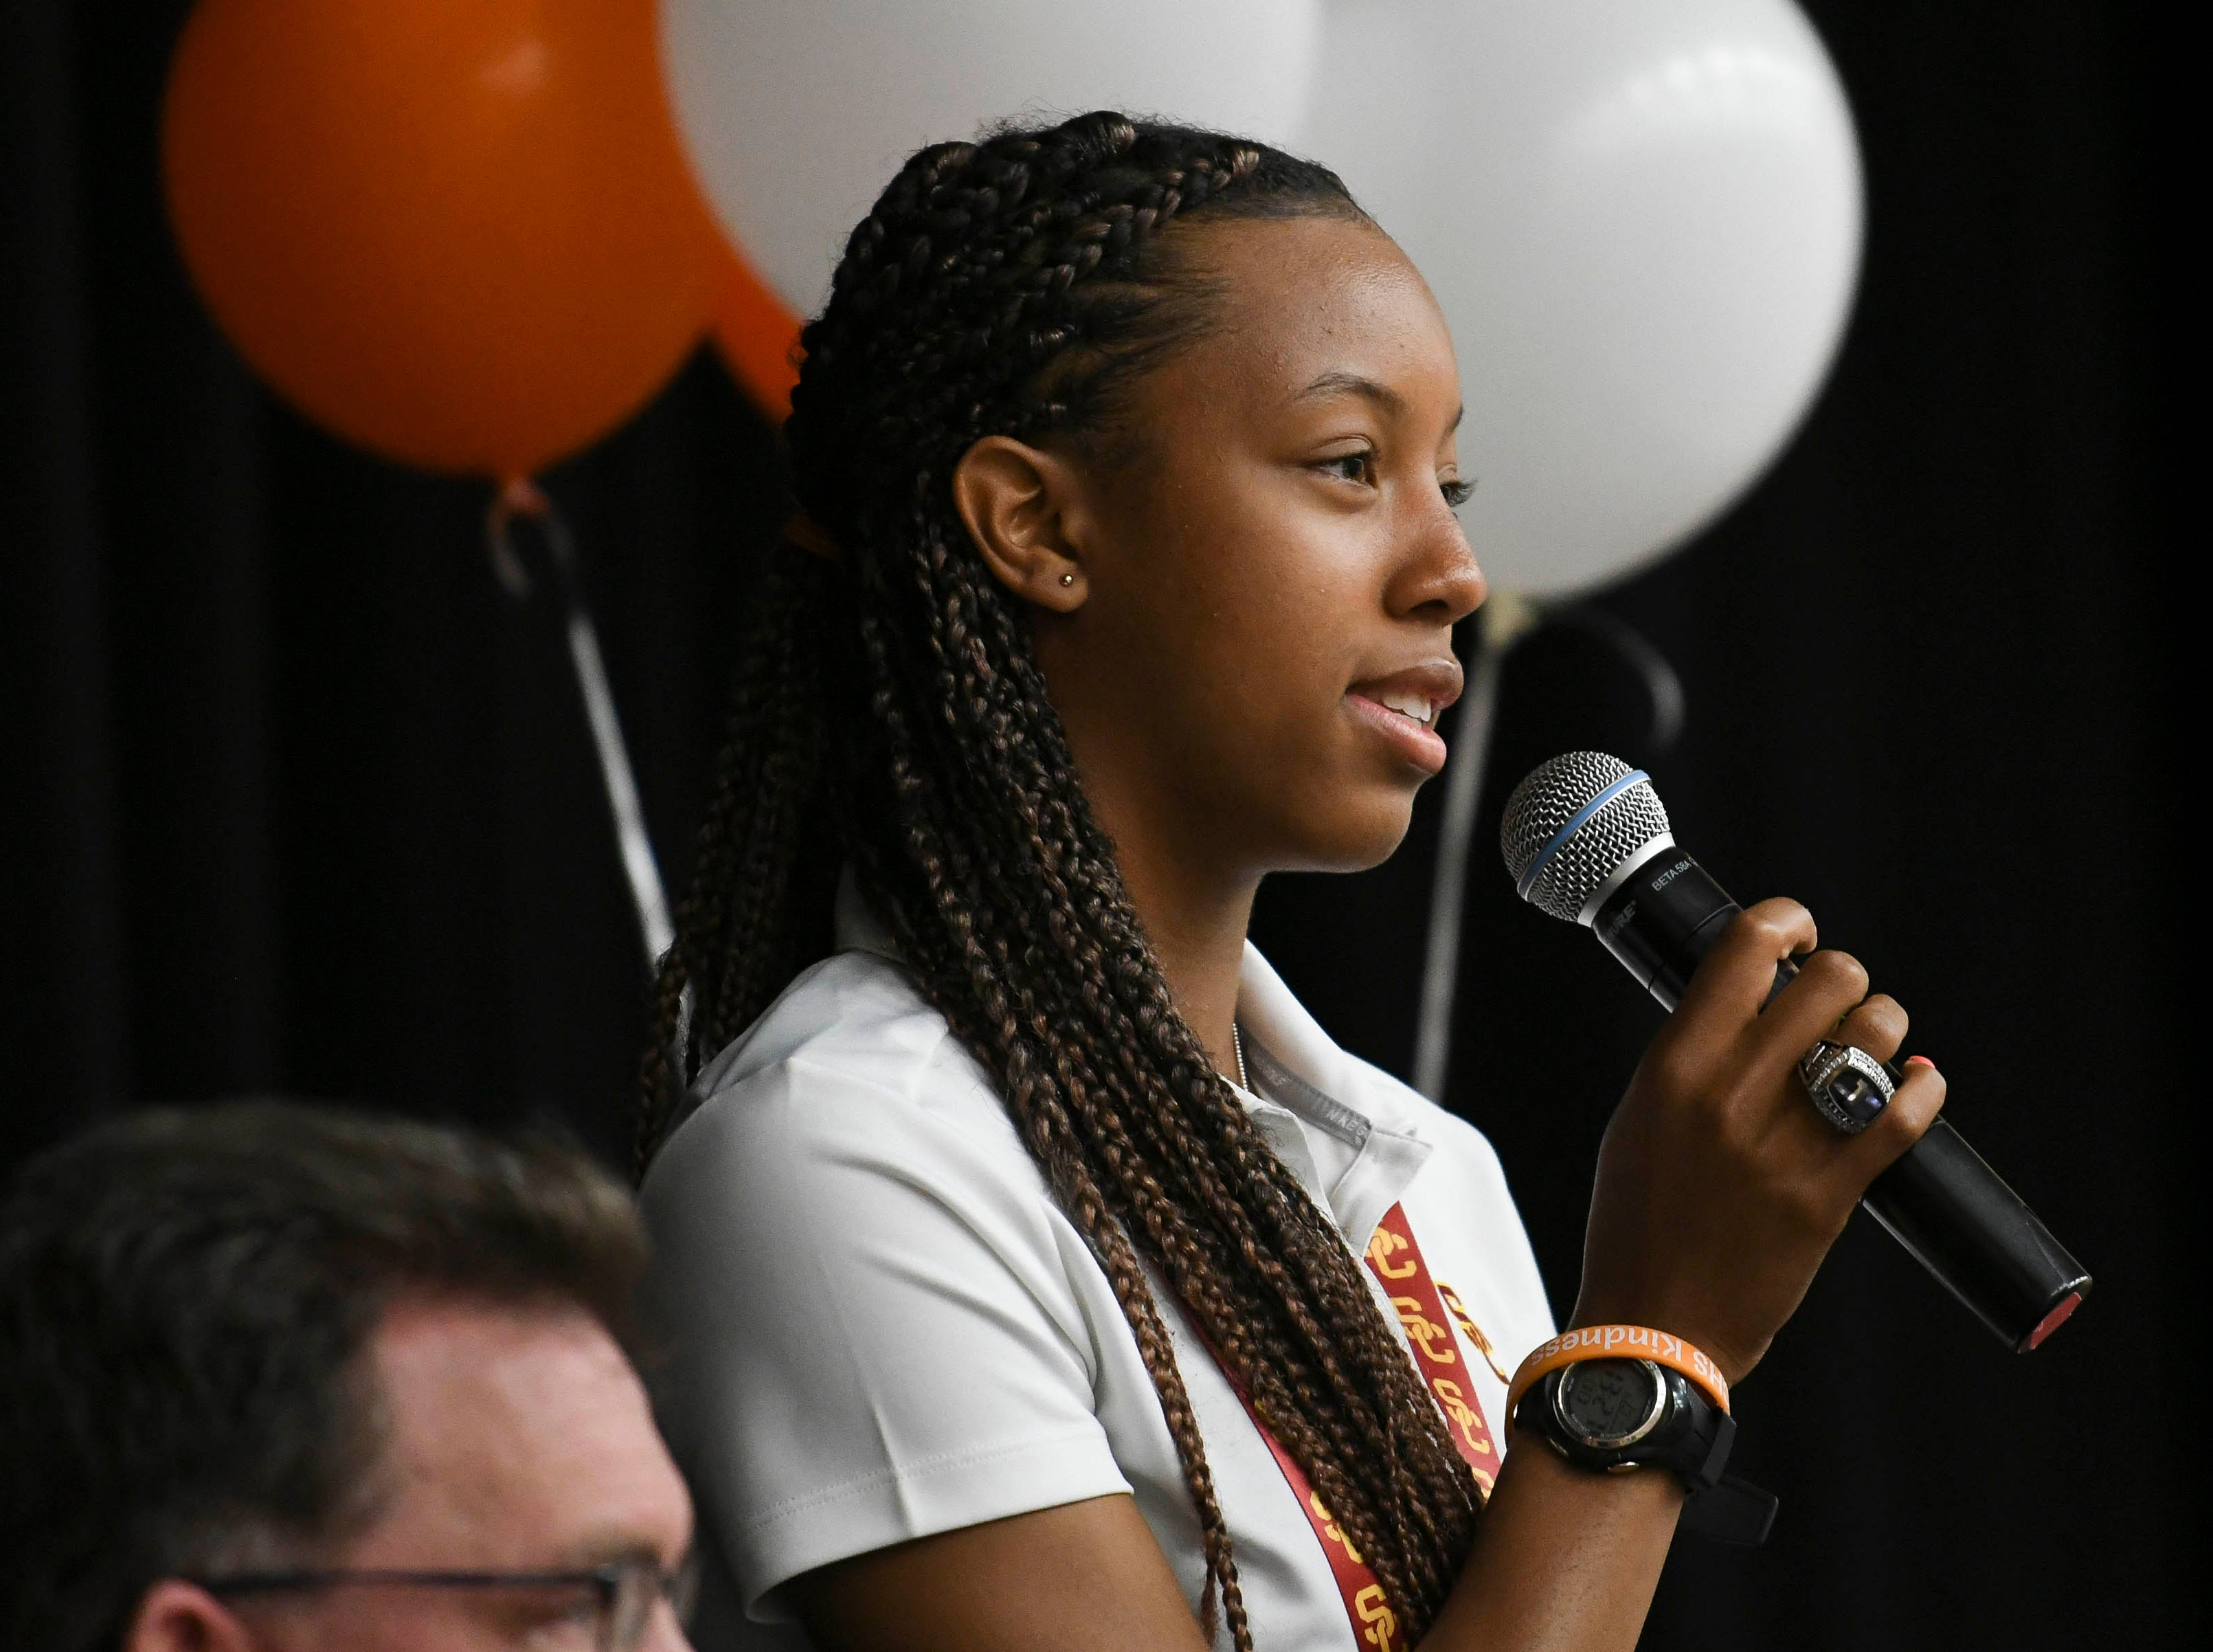 Jatana Folston thanks the people that helped her succeed in high school on National Signing Day at Cocoa High School